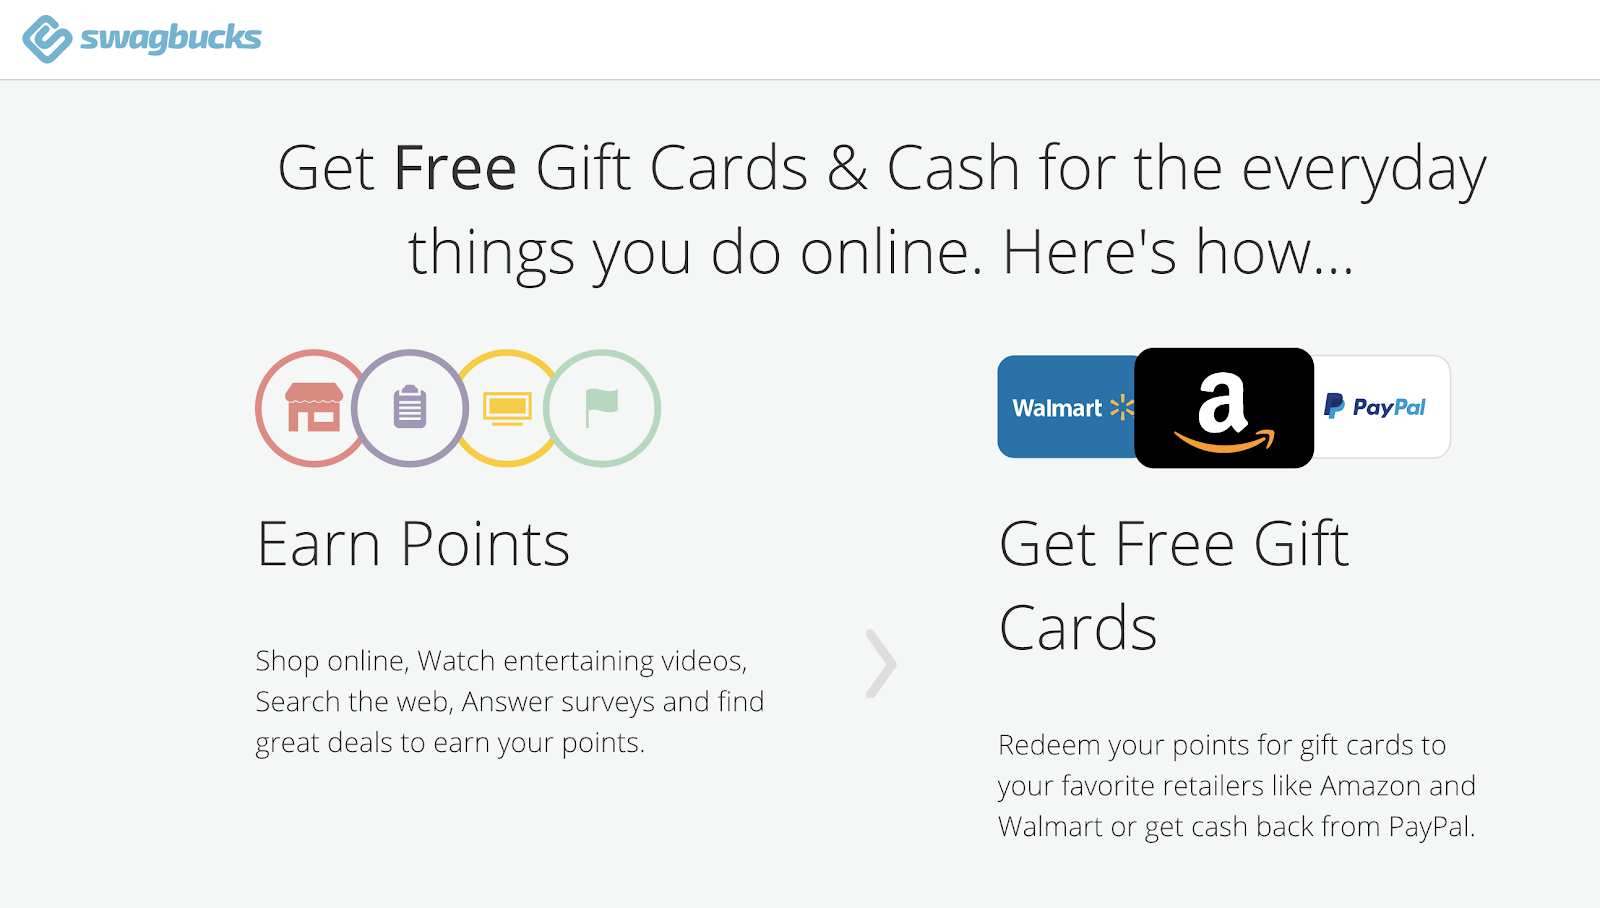 Swagbucks gives free gift cards for doing surveys, and watching videos